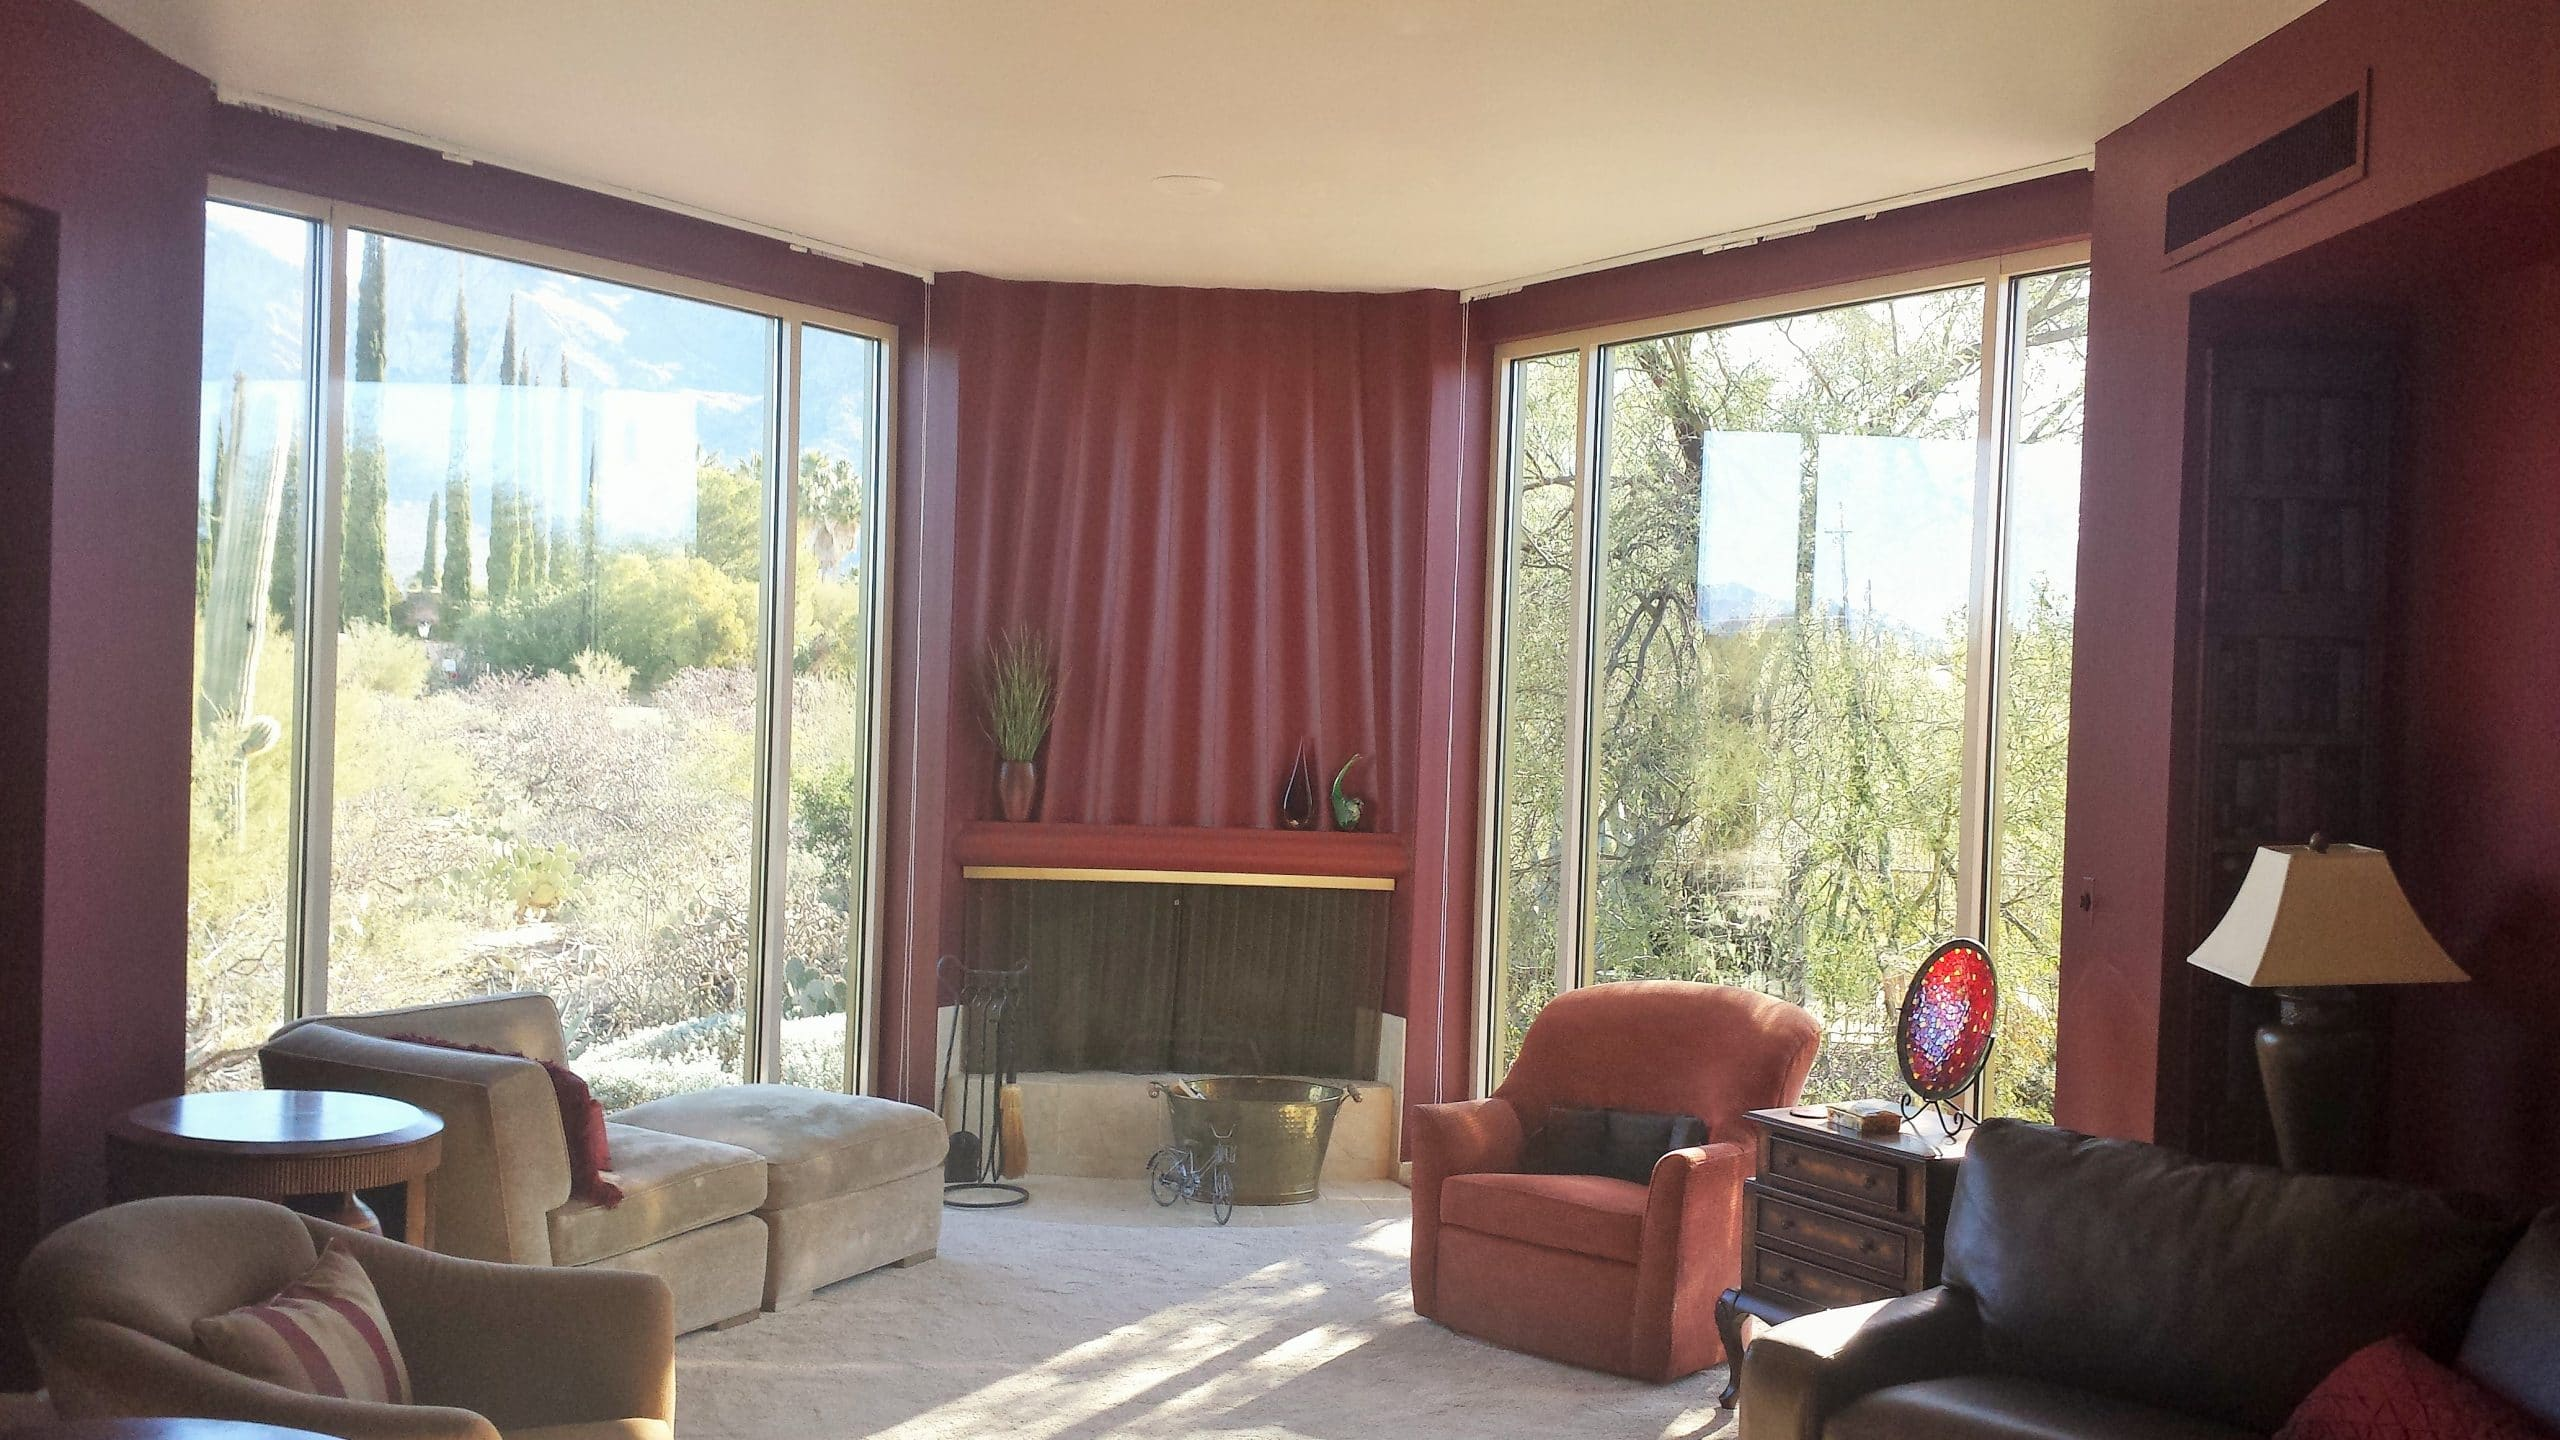 Fireplace in corner with floor to ceiling residential windows on either side